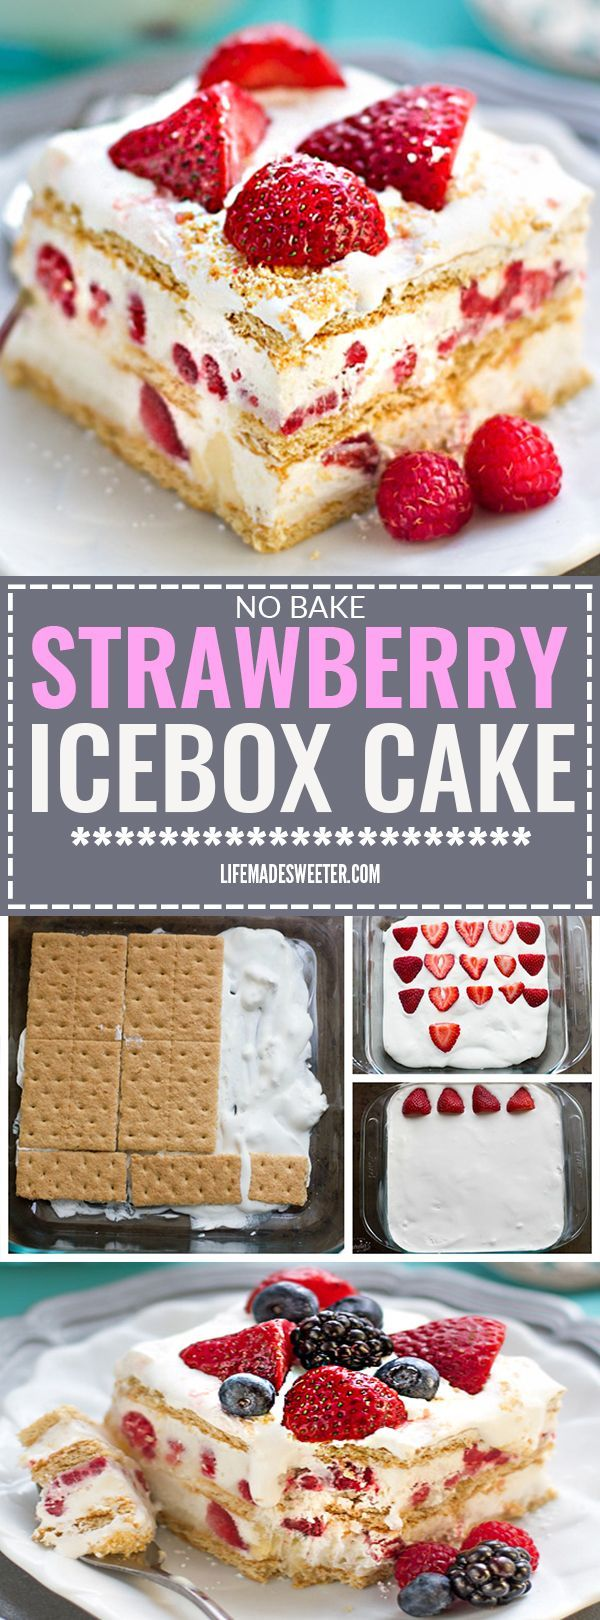 No BAKE Strawberry Cheesecake Icebox Cake is the perfect EASY dessert for spring and summer potlucks, cookouts, parties, barbecues, picnics, Mother's Day & baby showers. A favorite ice box dessert that only requires 5 ingredients and it's a great make ahead dish with fresh strawberries, whipped cream, cheesecake pudding, and graham crackers.